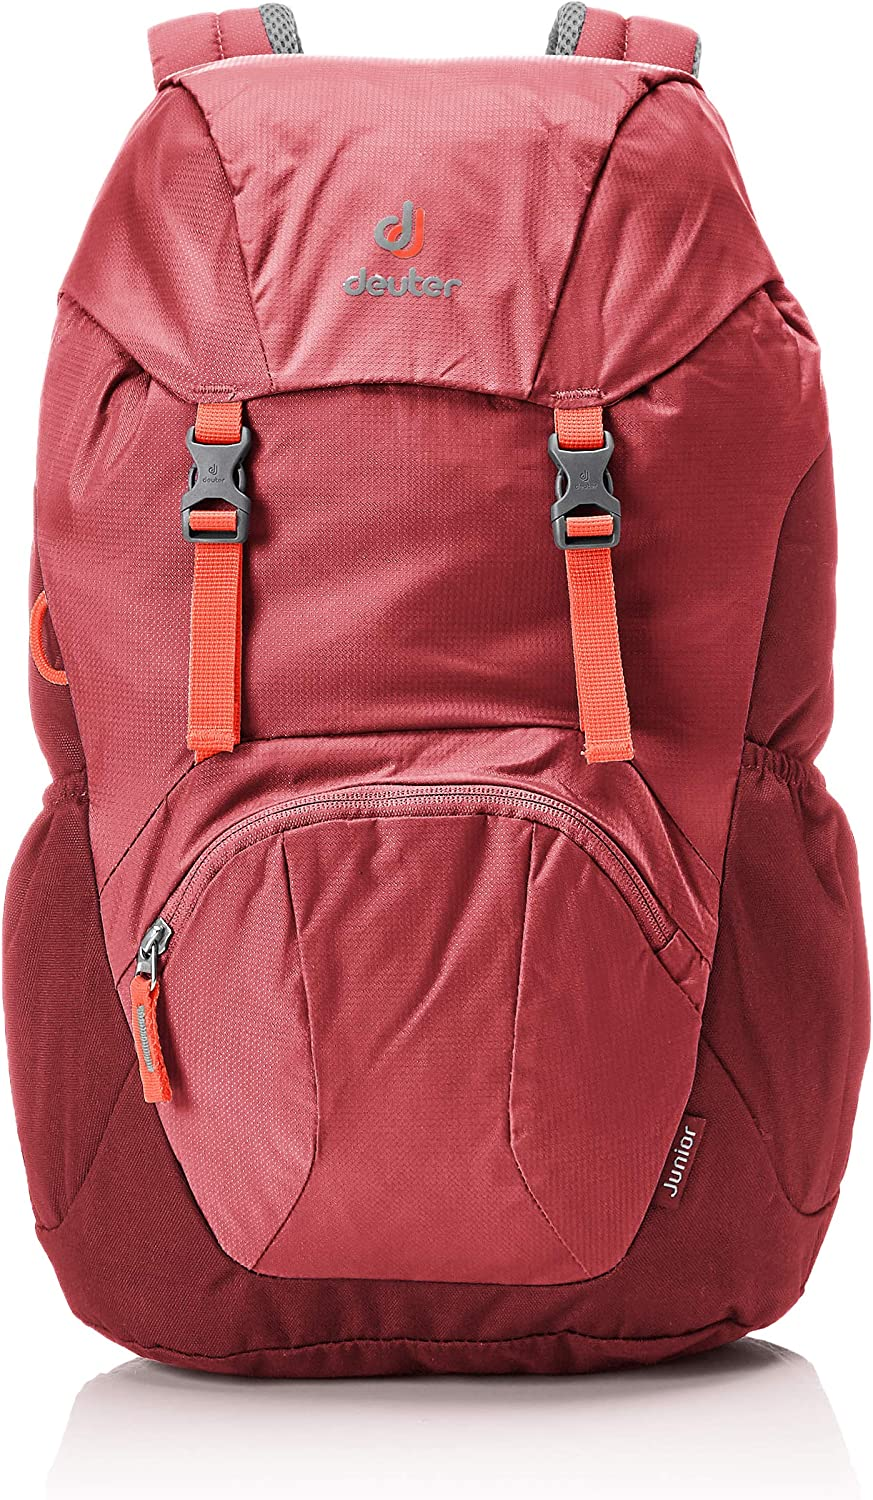 Deuter Unisex Junior Cardinal/Maroon One Size